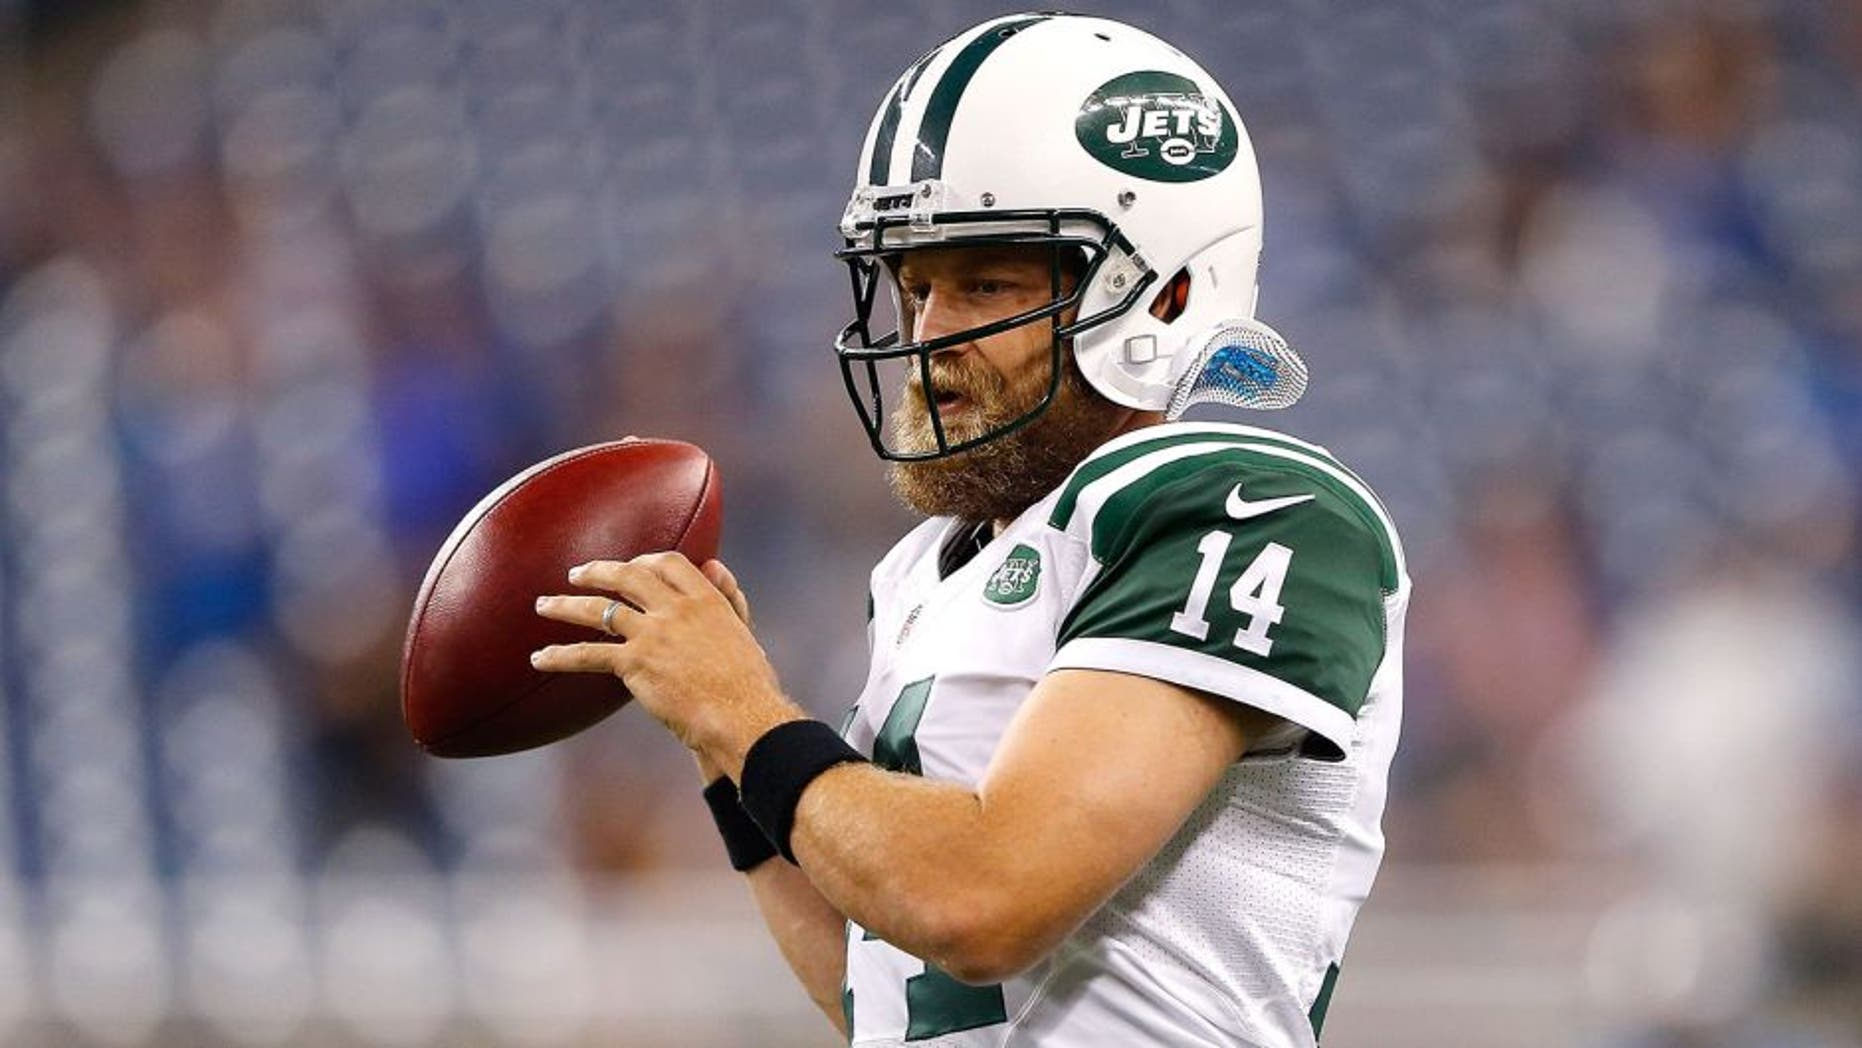 DETROIT, MI - AUGUST 13: Ryan Fitzpatrick #14 of the New York Jets warms up prior to the start of the preseason game against the Detroit Lions on August 13, 2015 at Ford Field Detroit, Michigan. The Lions defeated the Jets 23-3. (Photo by Leon Halip/Getty Images)